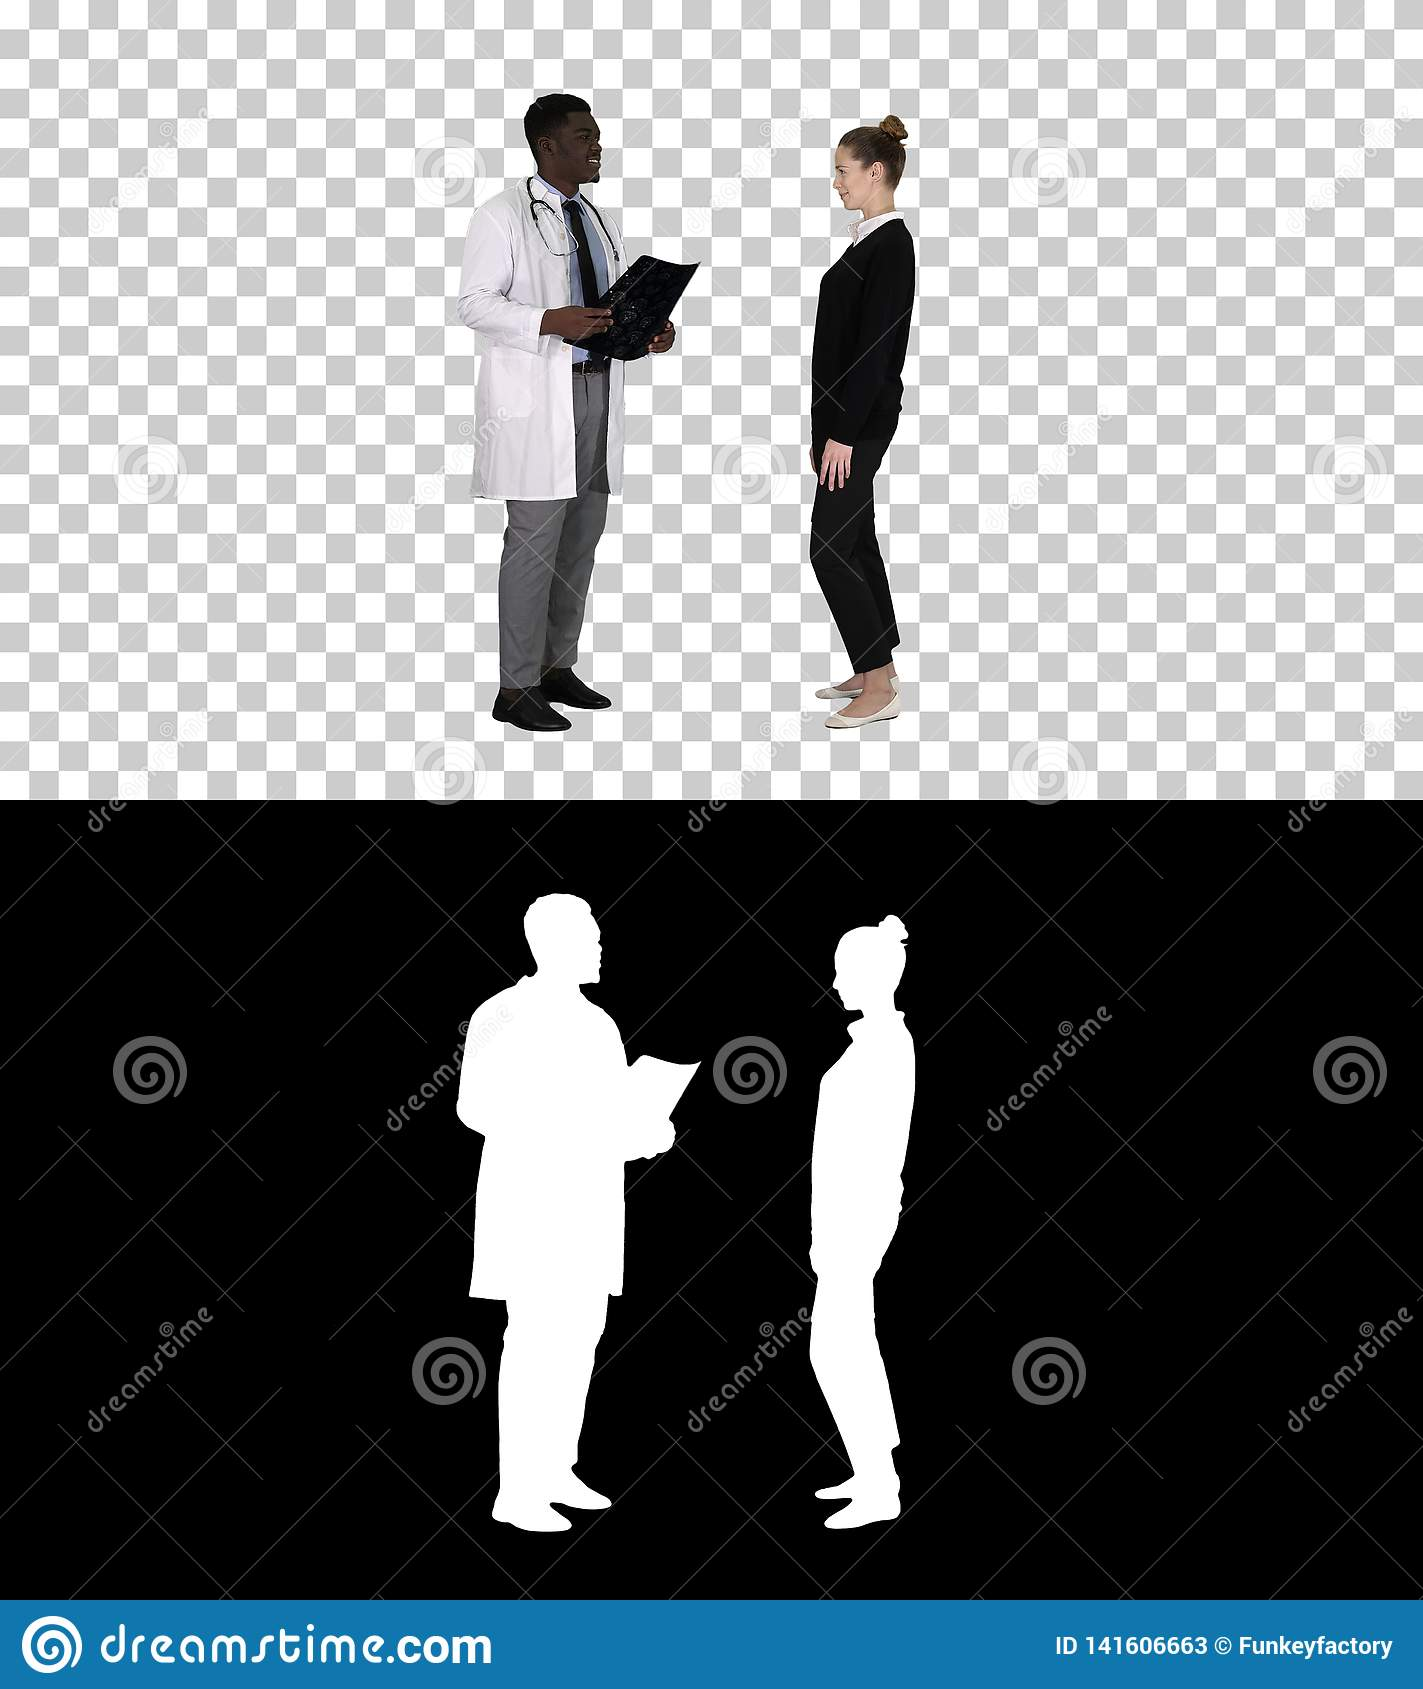 Physician showing a patient the X-ray results Then patient leaves, Alpha Channel